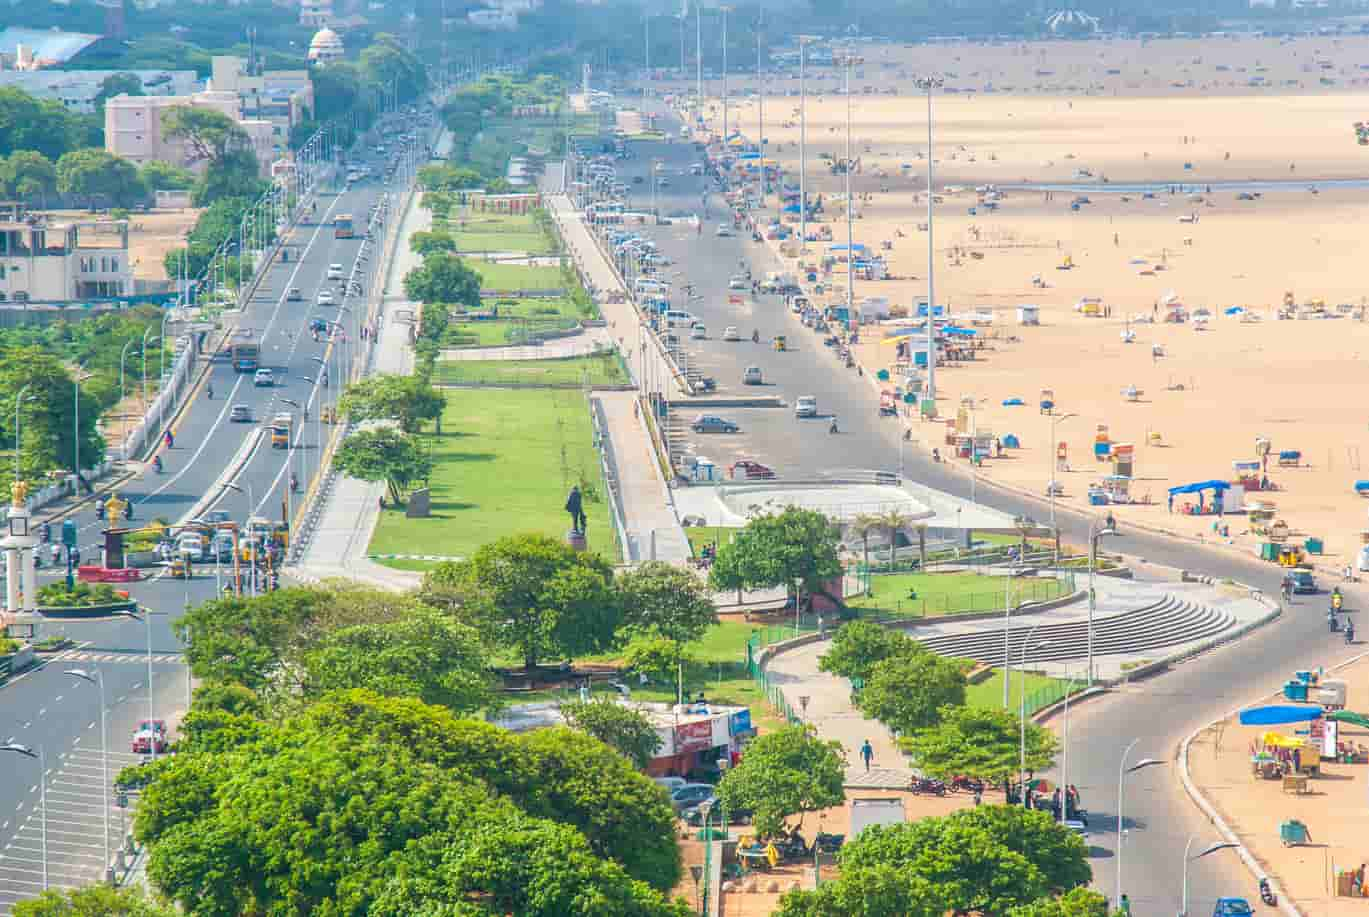 24 Things Chennai is Famous For, What Makes Chennai Famous